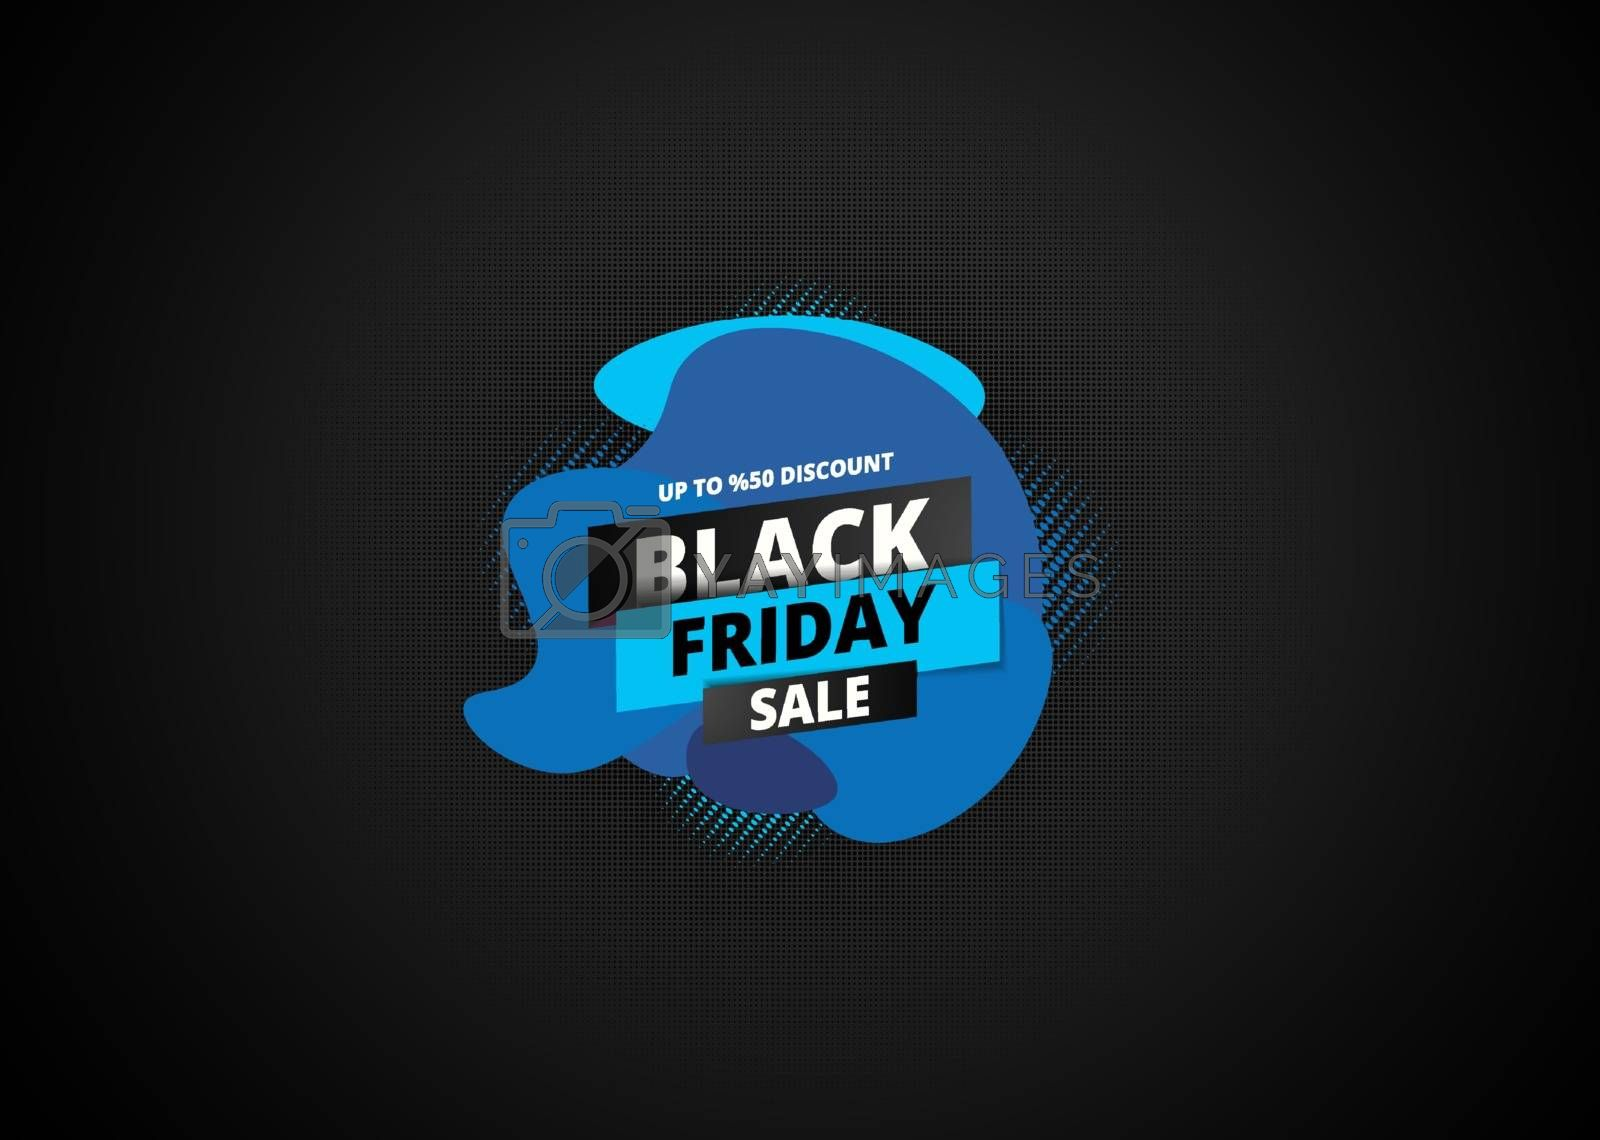 Upto 50% discount offer for Black Friday Sale text on halftone effect background. Can be used as poster or template design.